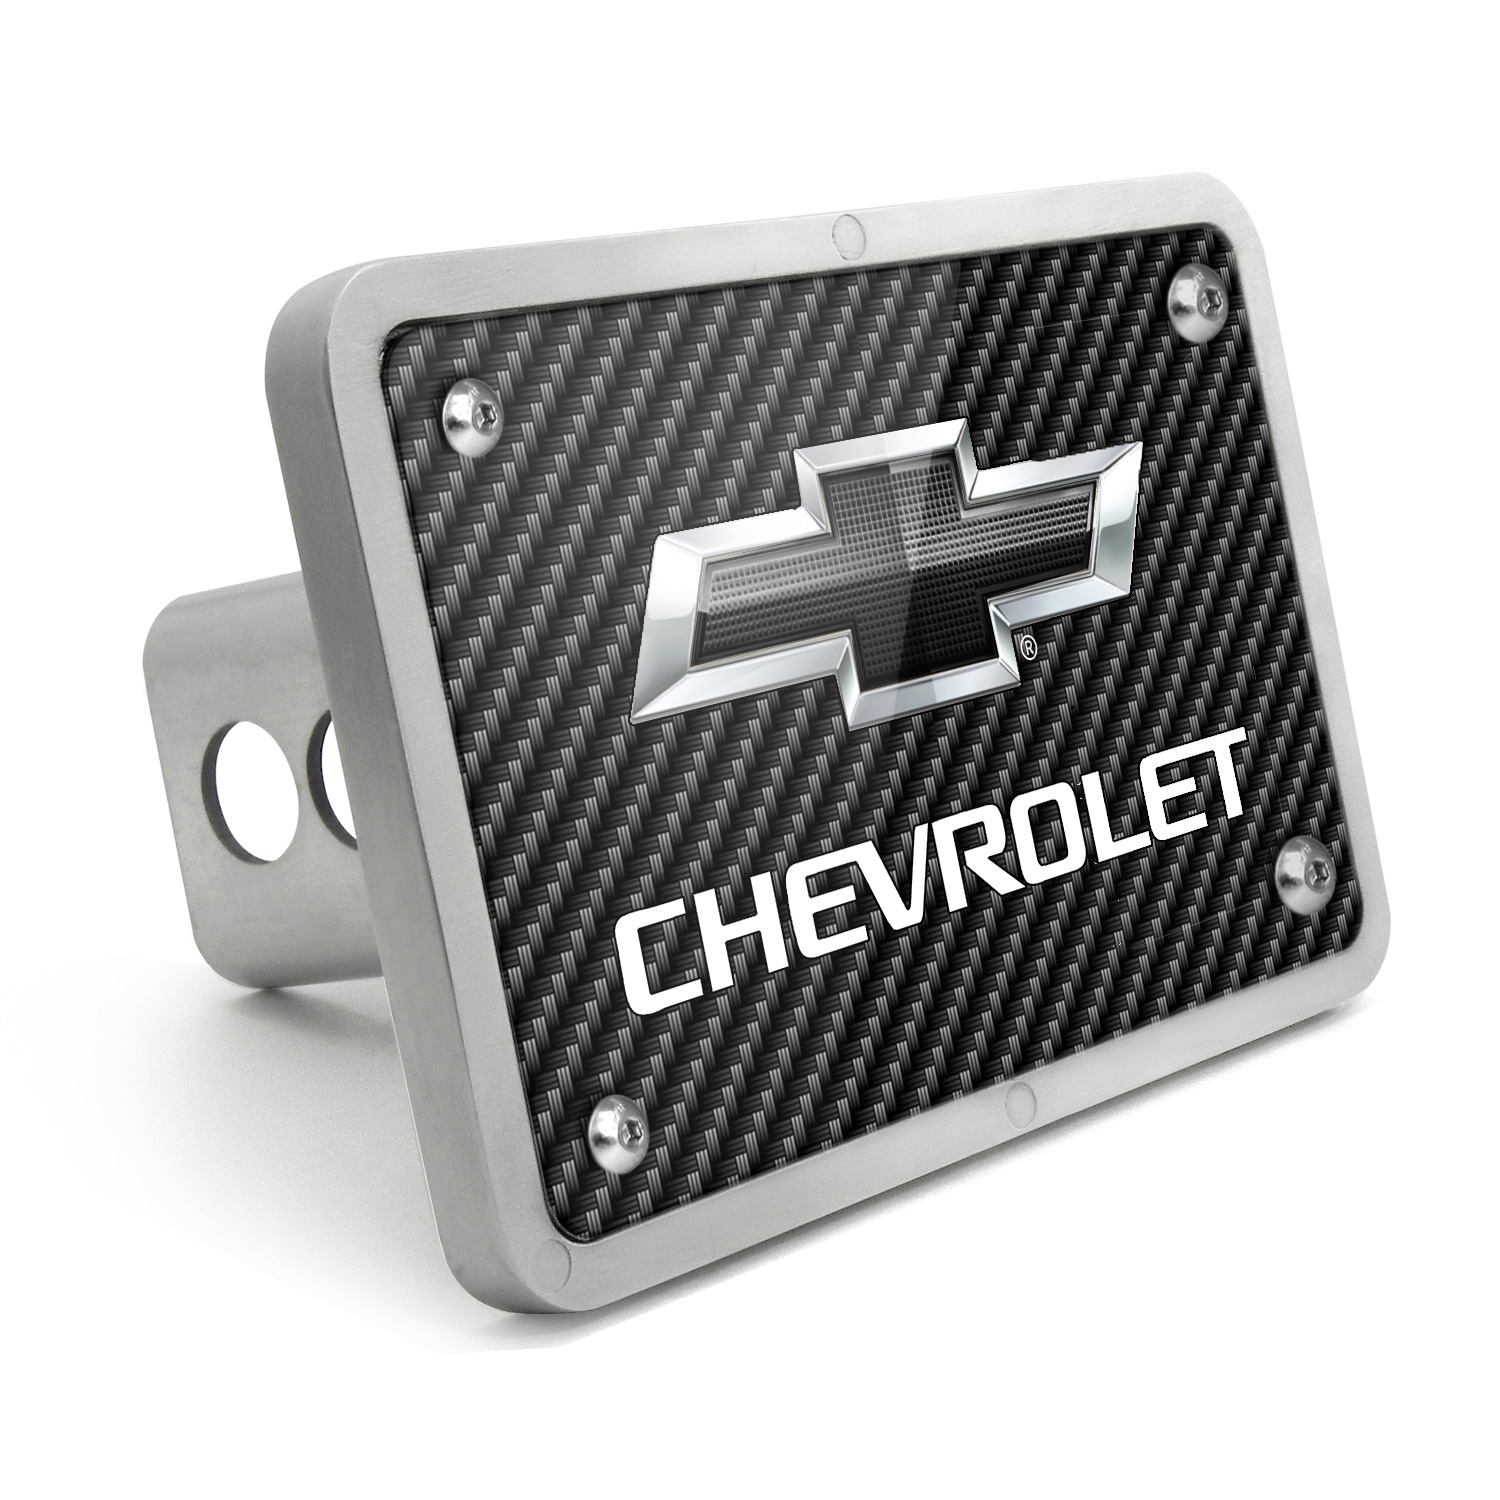 Chevrolet Black Logo 2011 UV Graphic Carbon Fiber Texture Billet Aluminum 2 inch Tow Hitch Cover